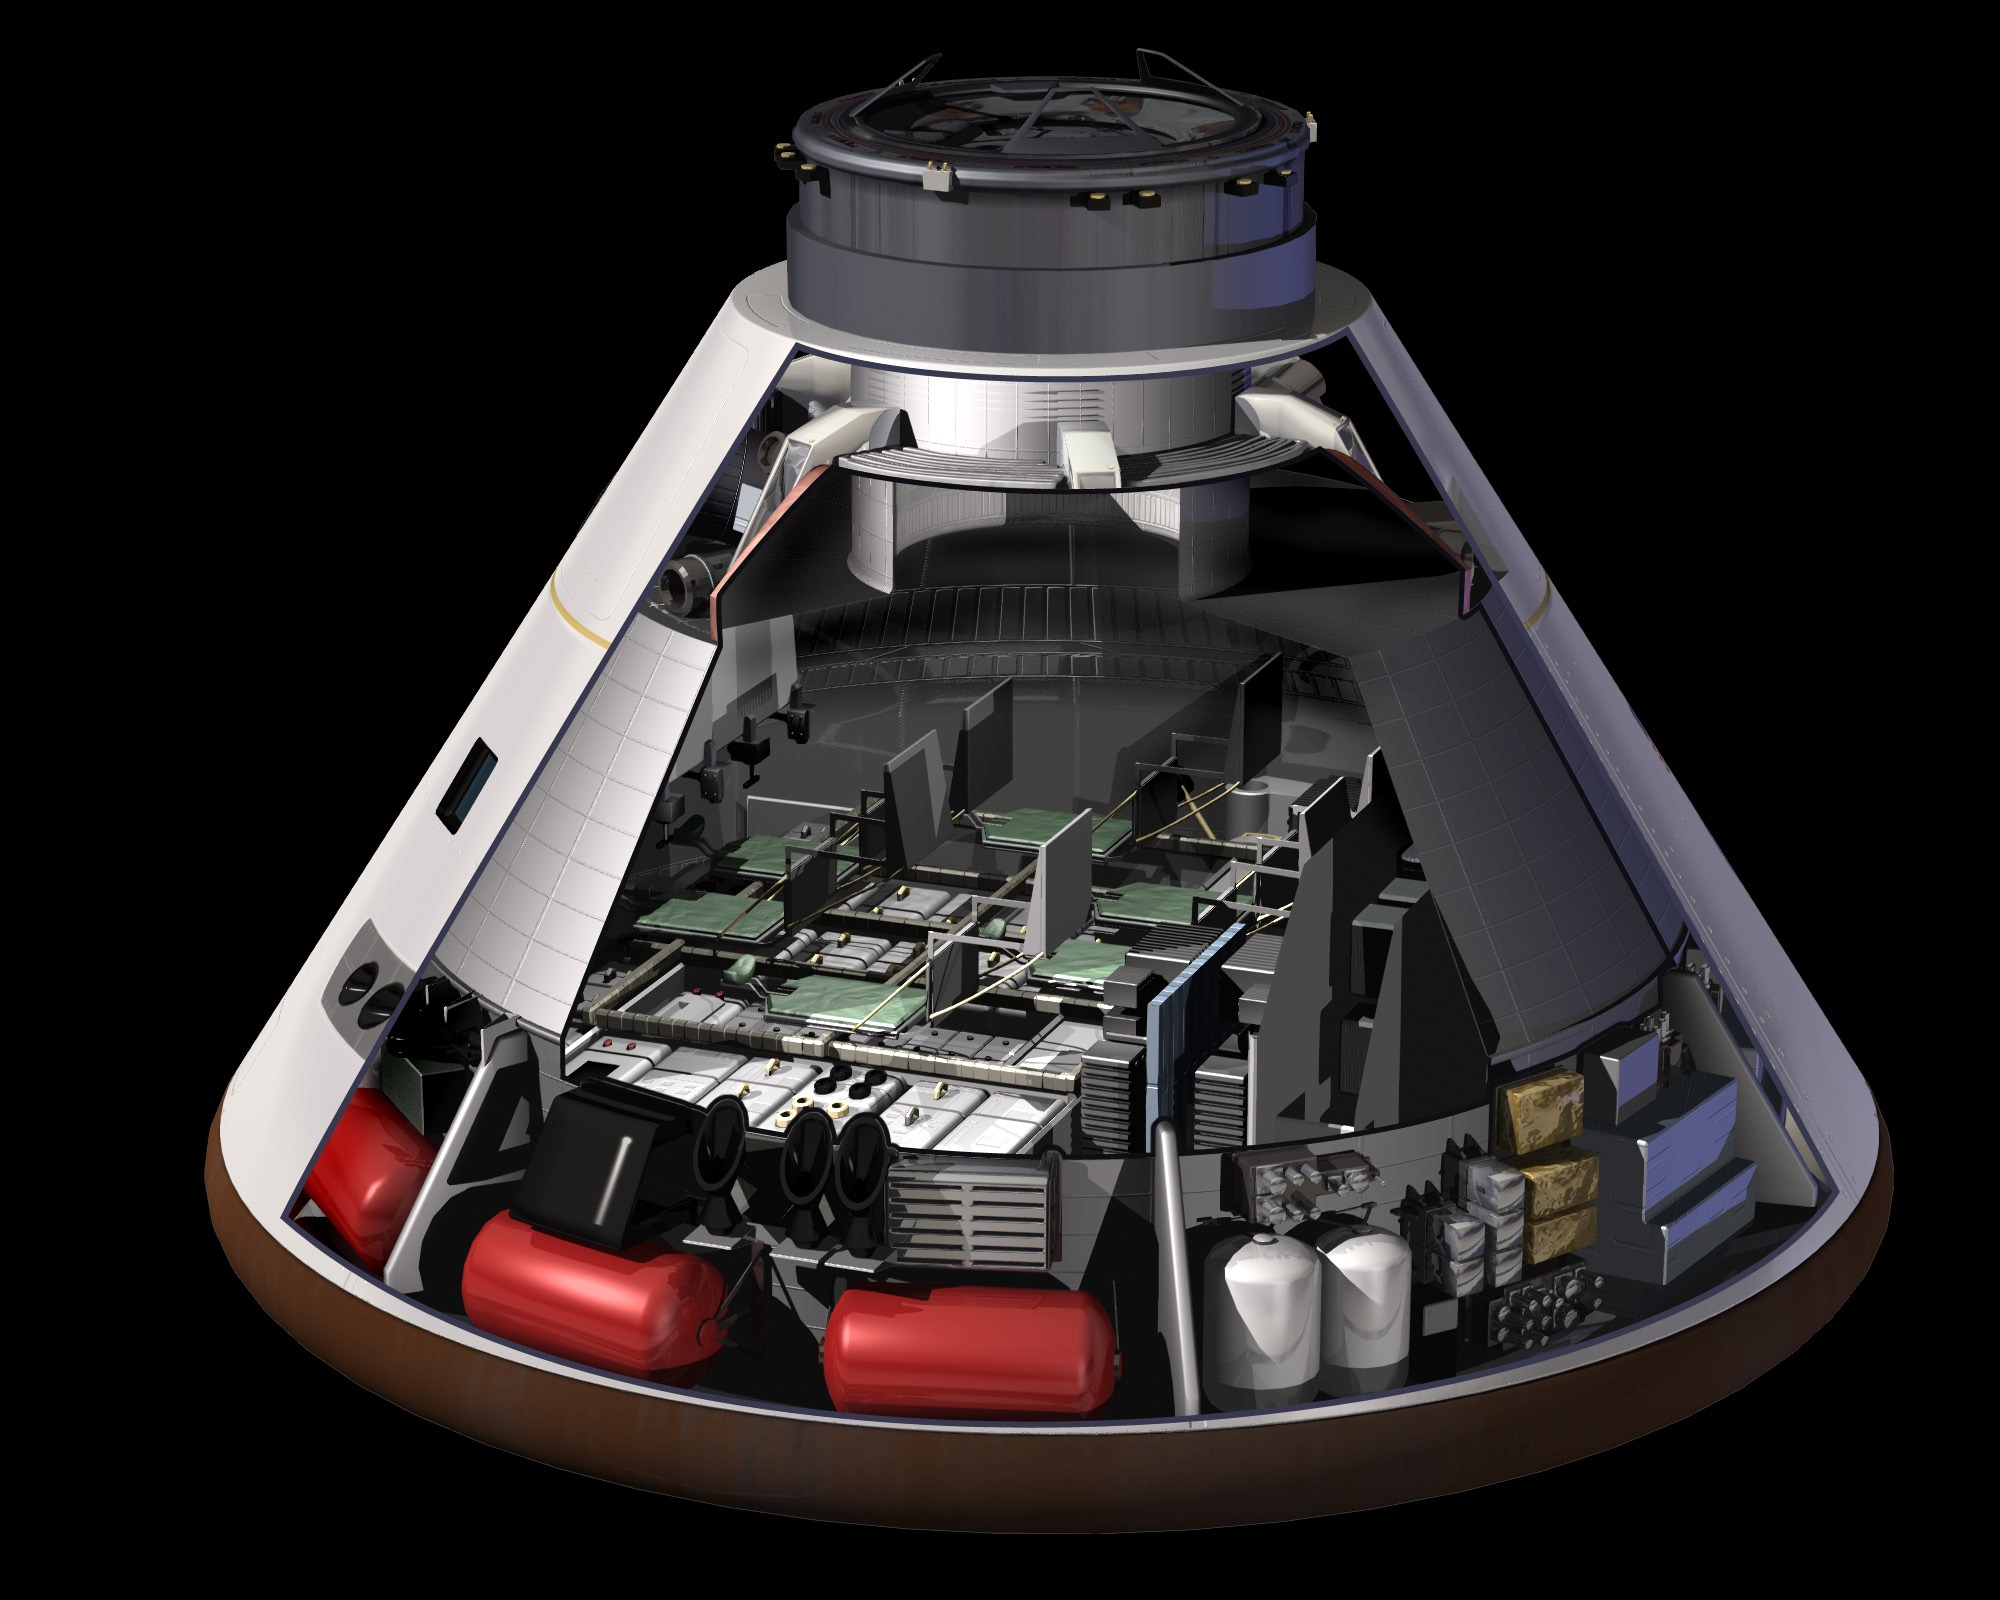 orion spacecraft - photo #7